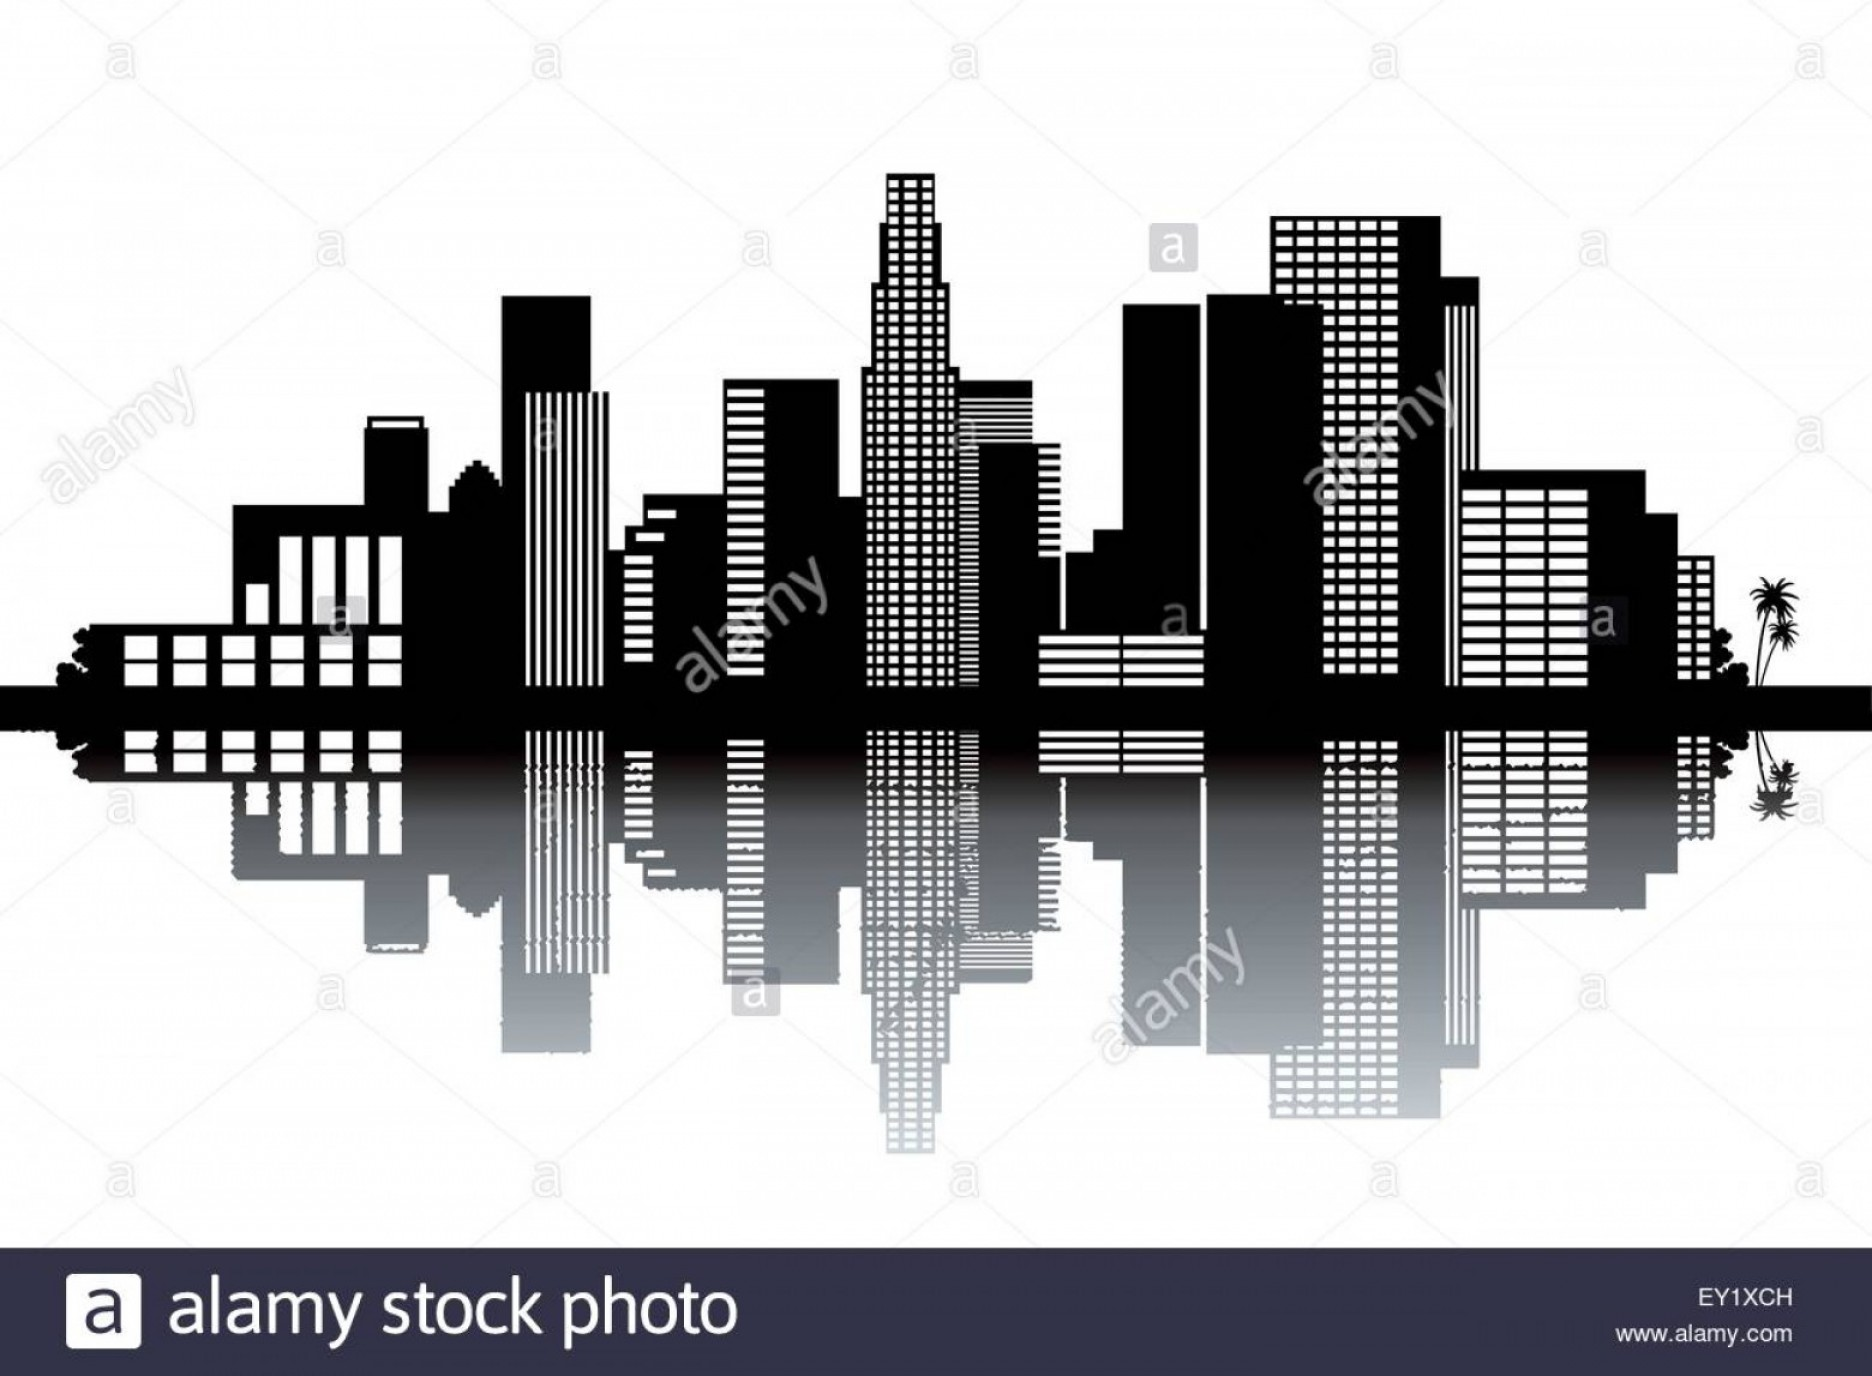 Hollywood Hills Vector: Stock Photo Los Angeles Skyline Black And White Vector Illustration